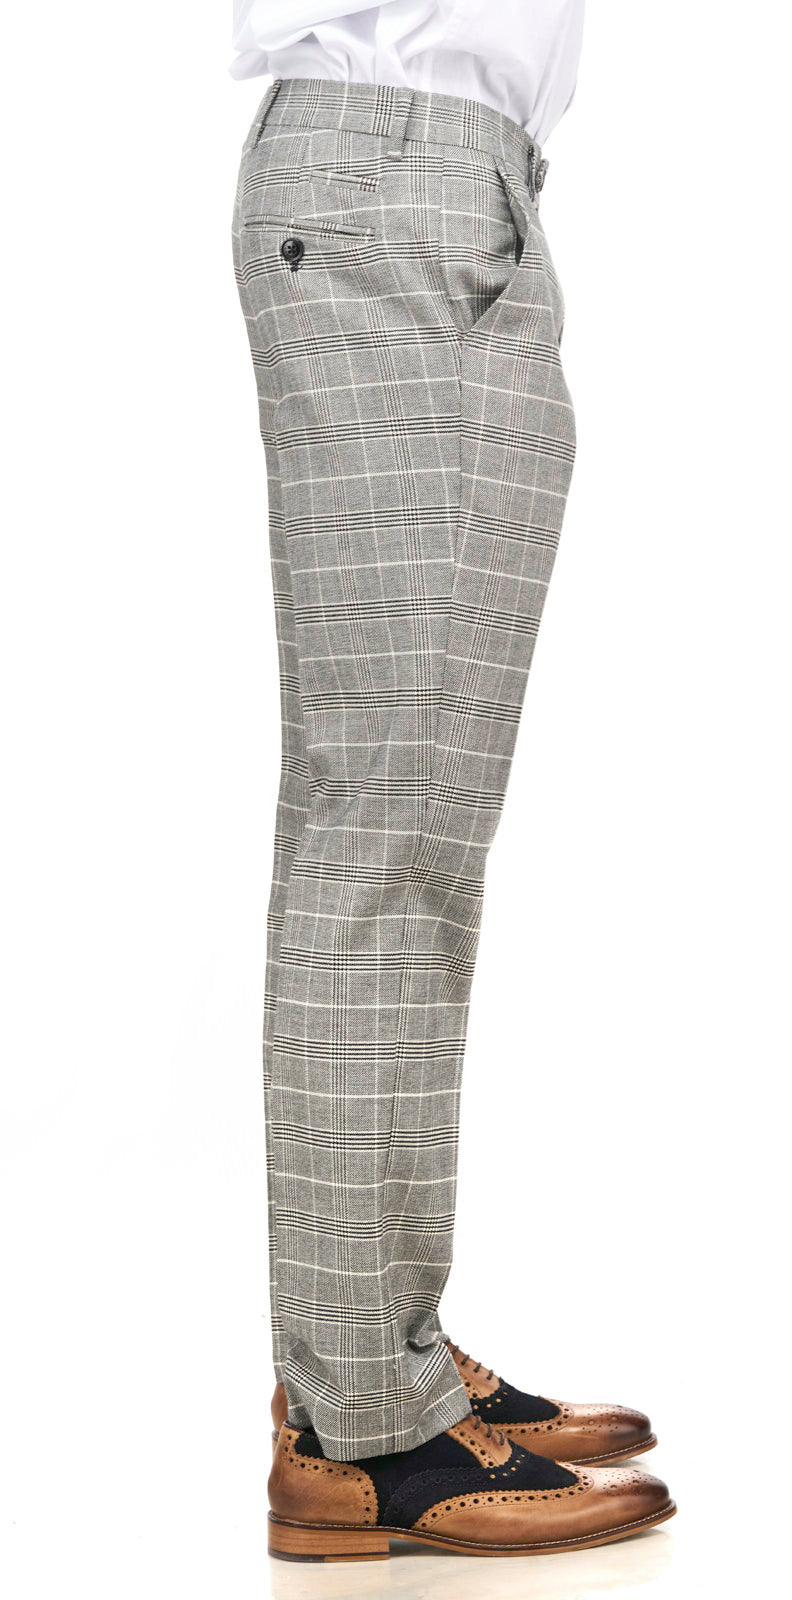 Grey Tweed Trousers | Mens Tweed Trousers | Mens Tweed Suits | Marc Darcy Menswear